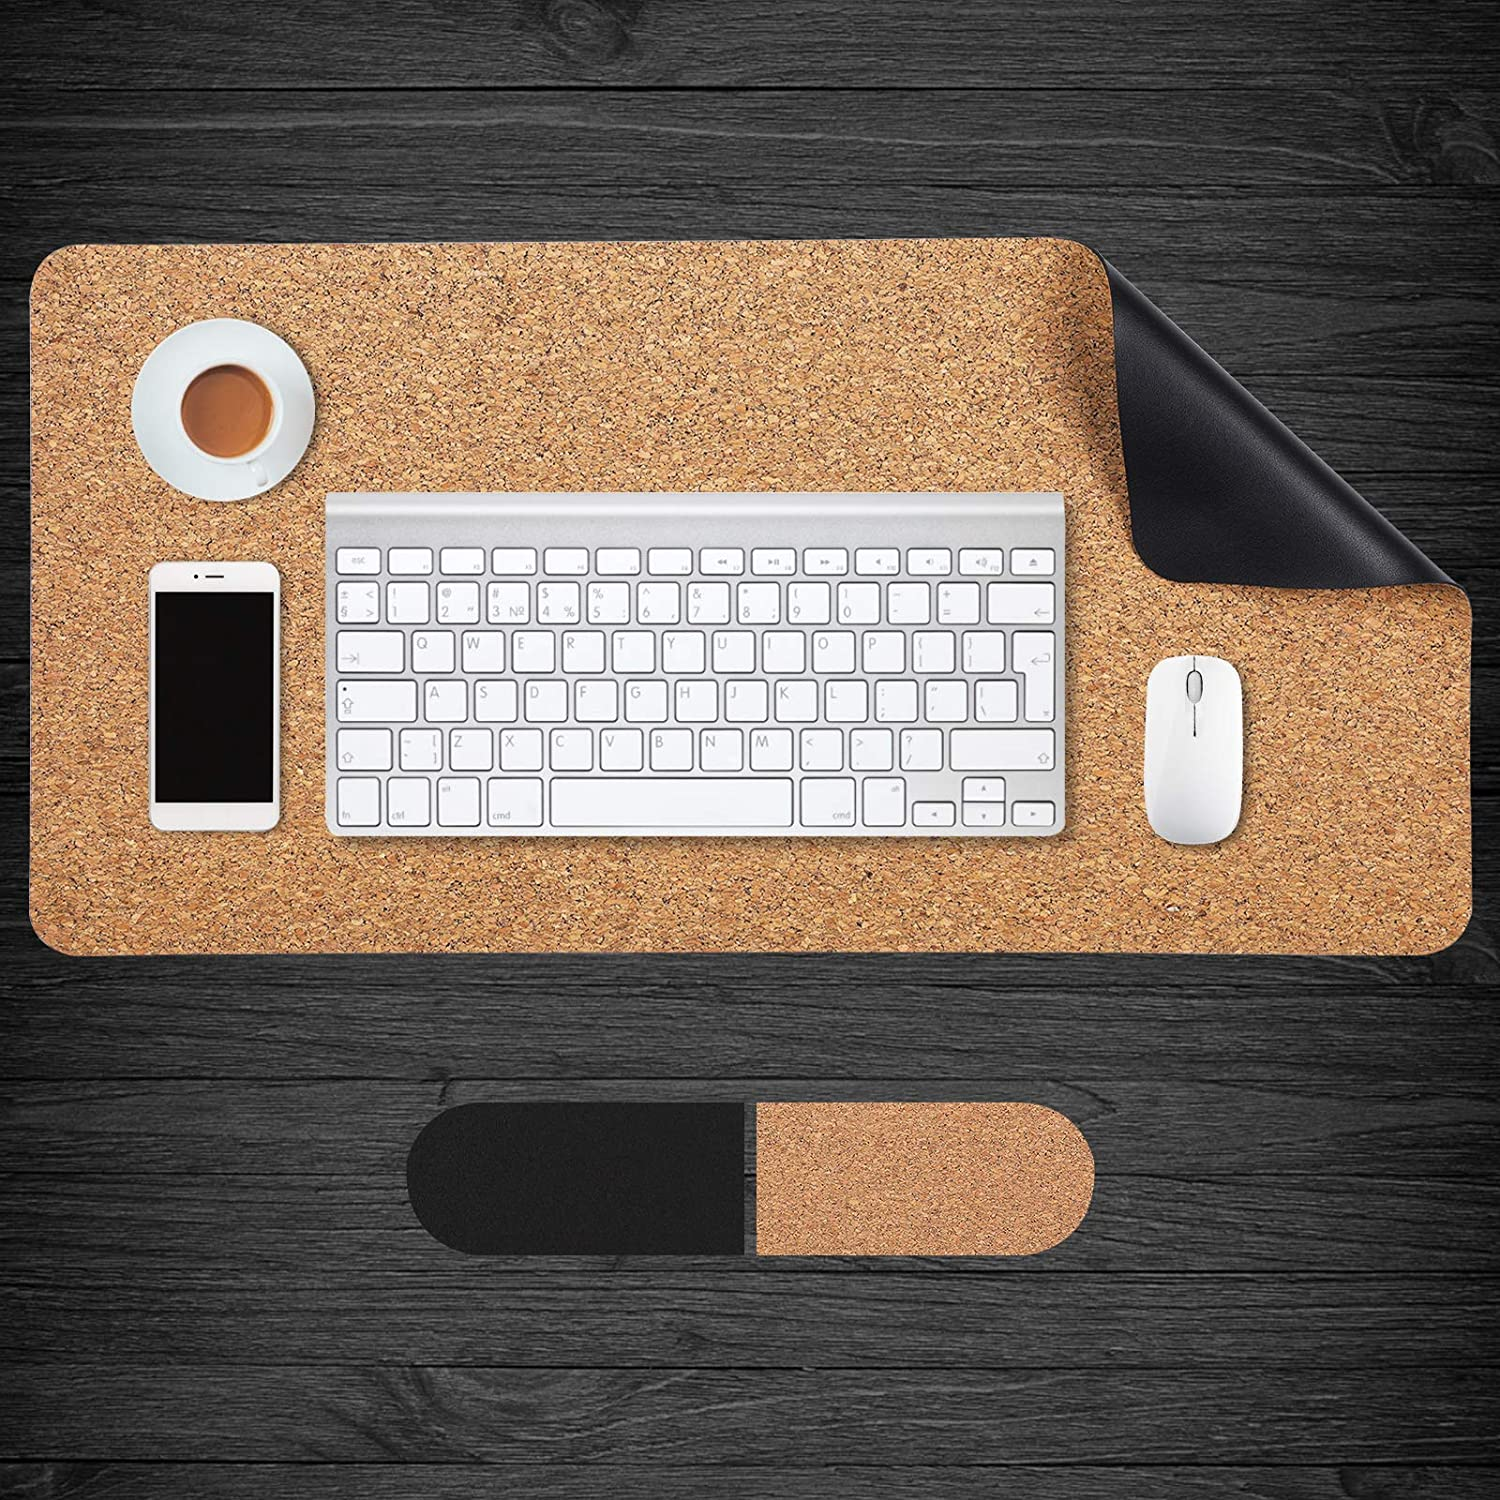 Aelfox Cork & Leather Desk Pad, Natural Office Desk Mat Double-Sided Use, Smooth Extended Large Mouse Pad Desk Accessories (31.5 x 15.7 inches, Black/Cork)